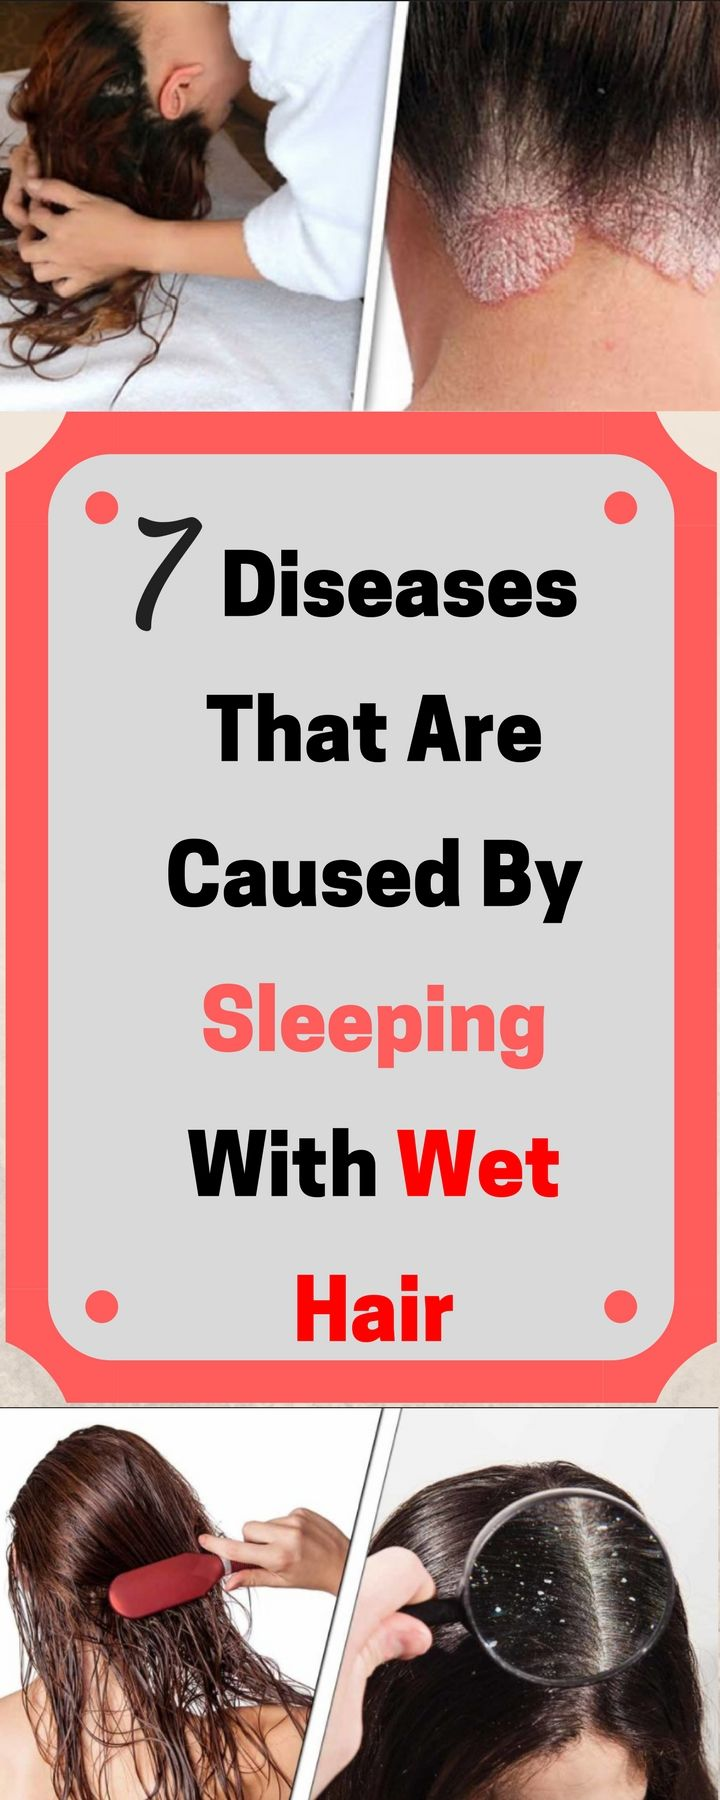 7 Diseases That Are Caused By Sleeping With Wet Hair!